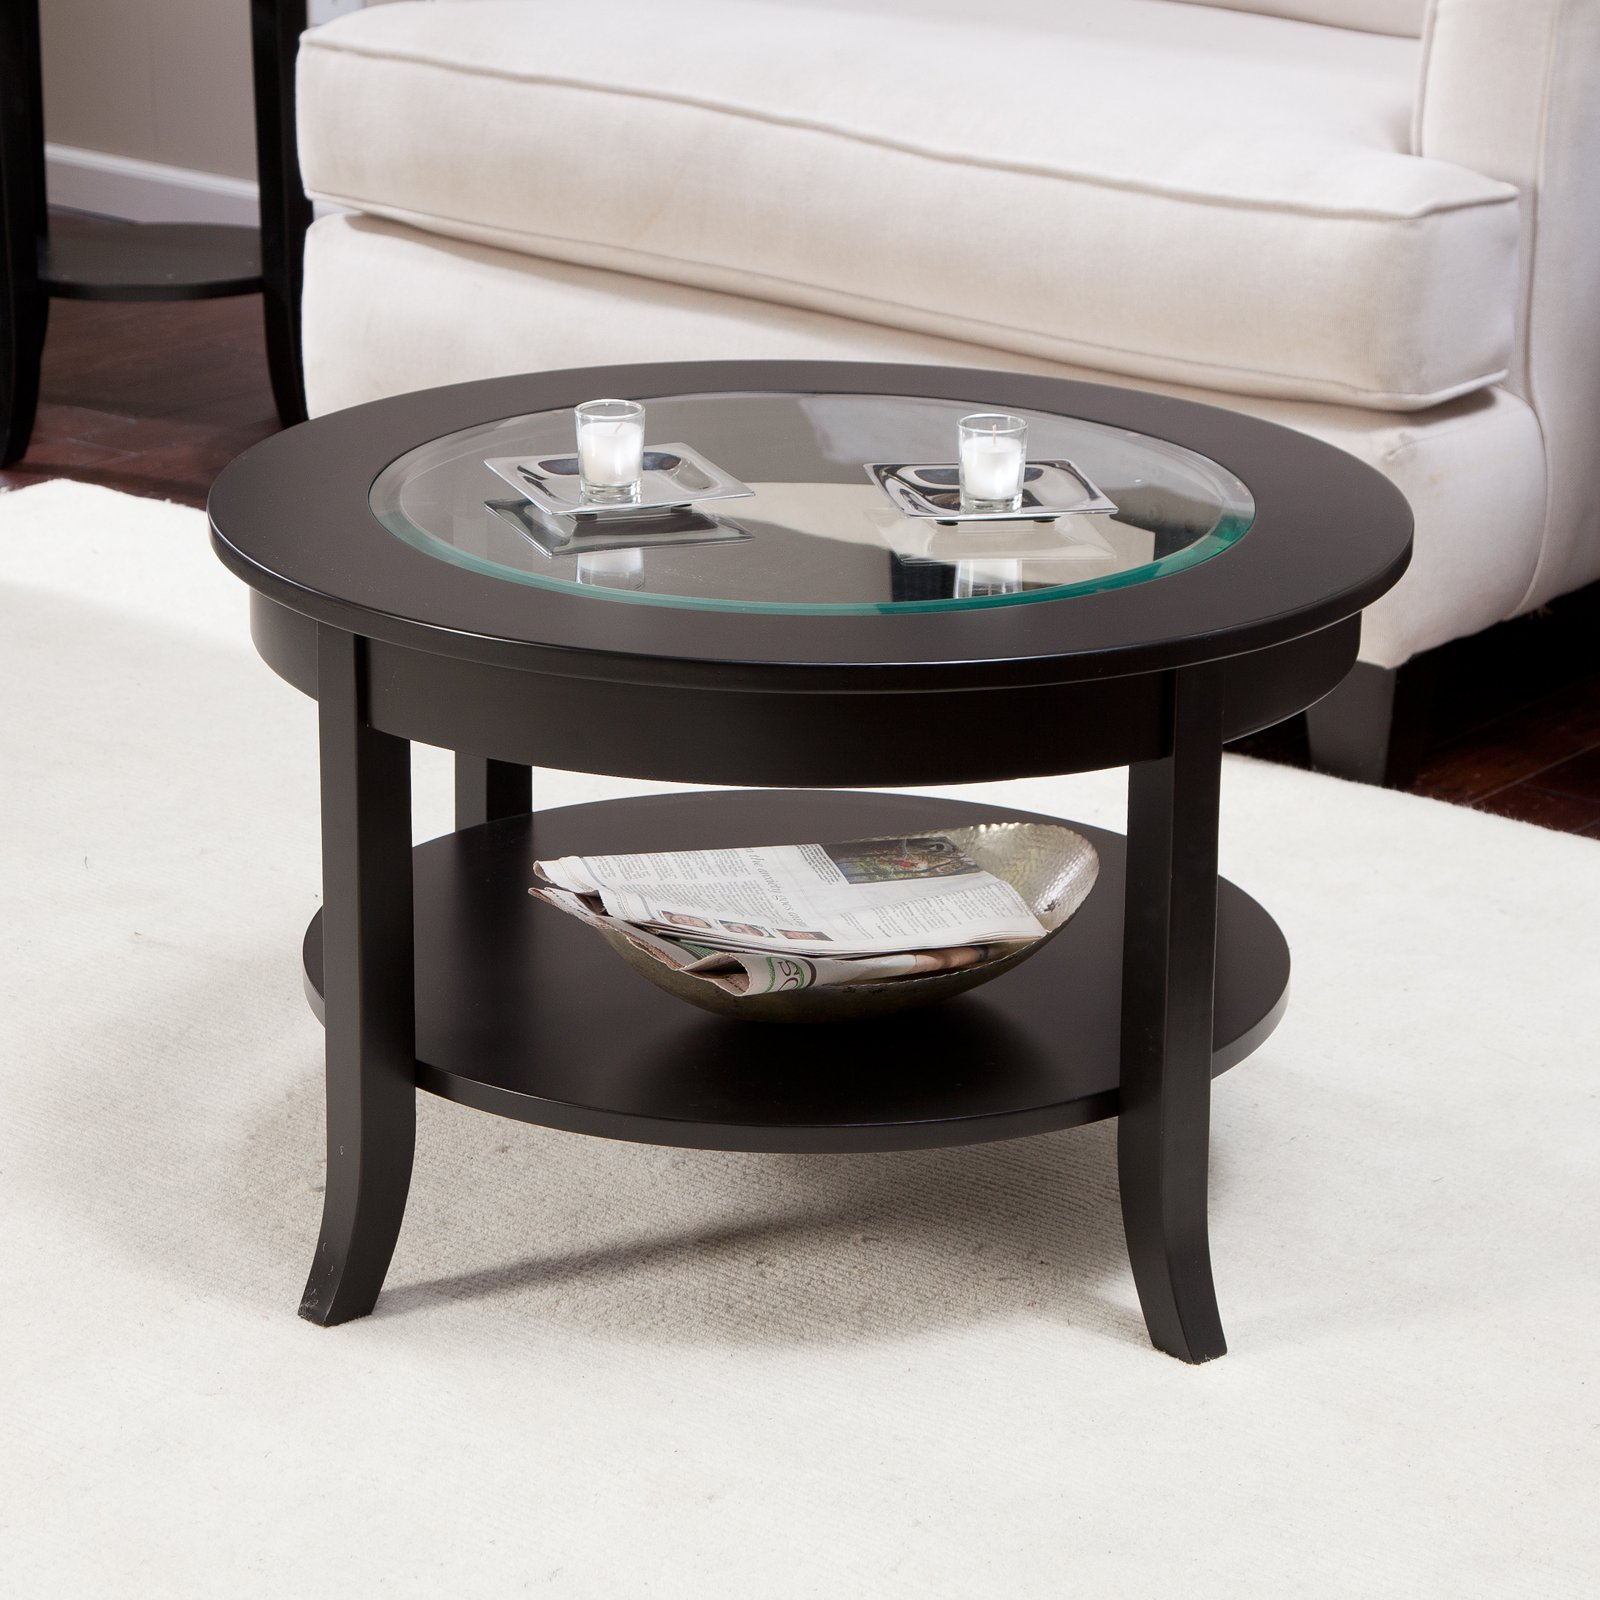 coffee tables ideas small round glass top table outdoor side flip tile industrial lamp battery powered living room lamps colorful white drop leaf kmart cushions grey console